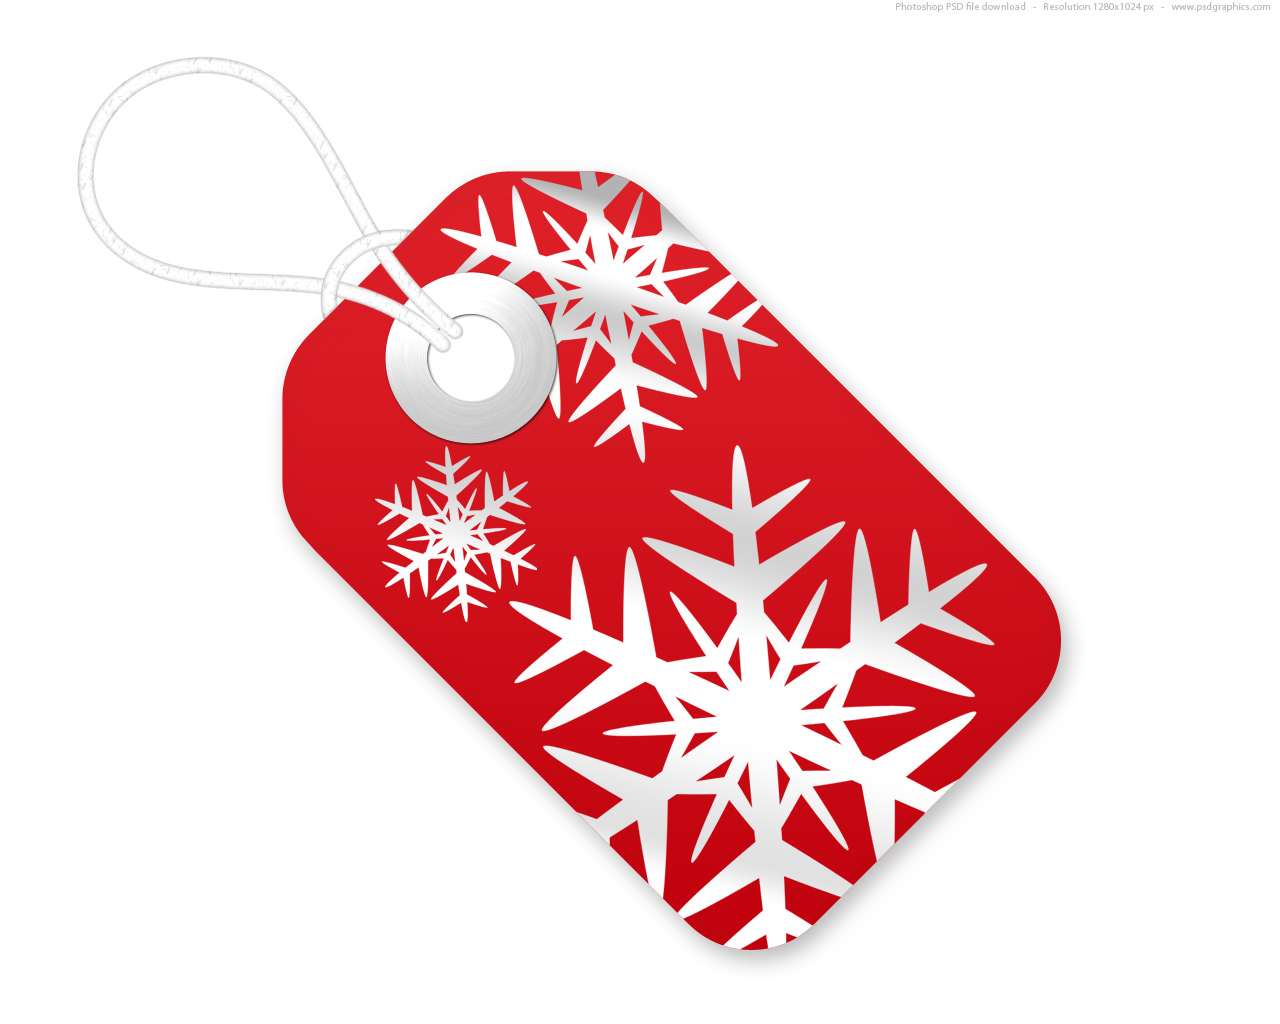 11 Christmas Tag Template PSD Images